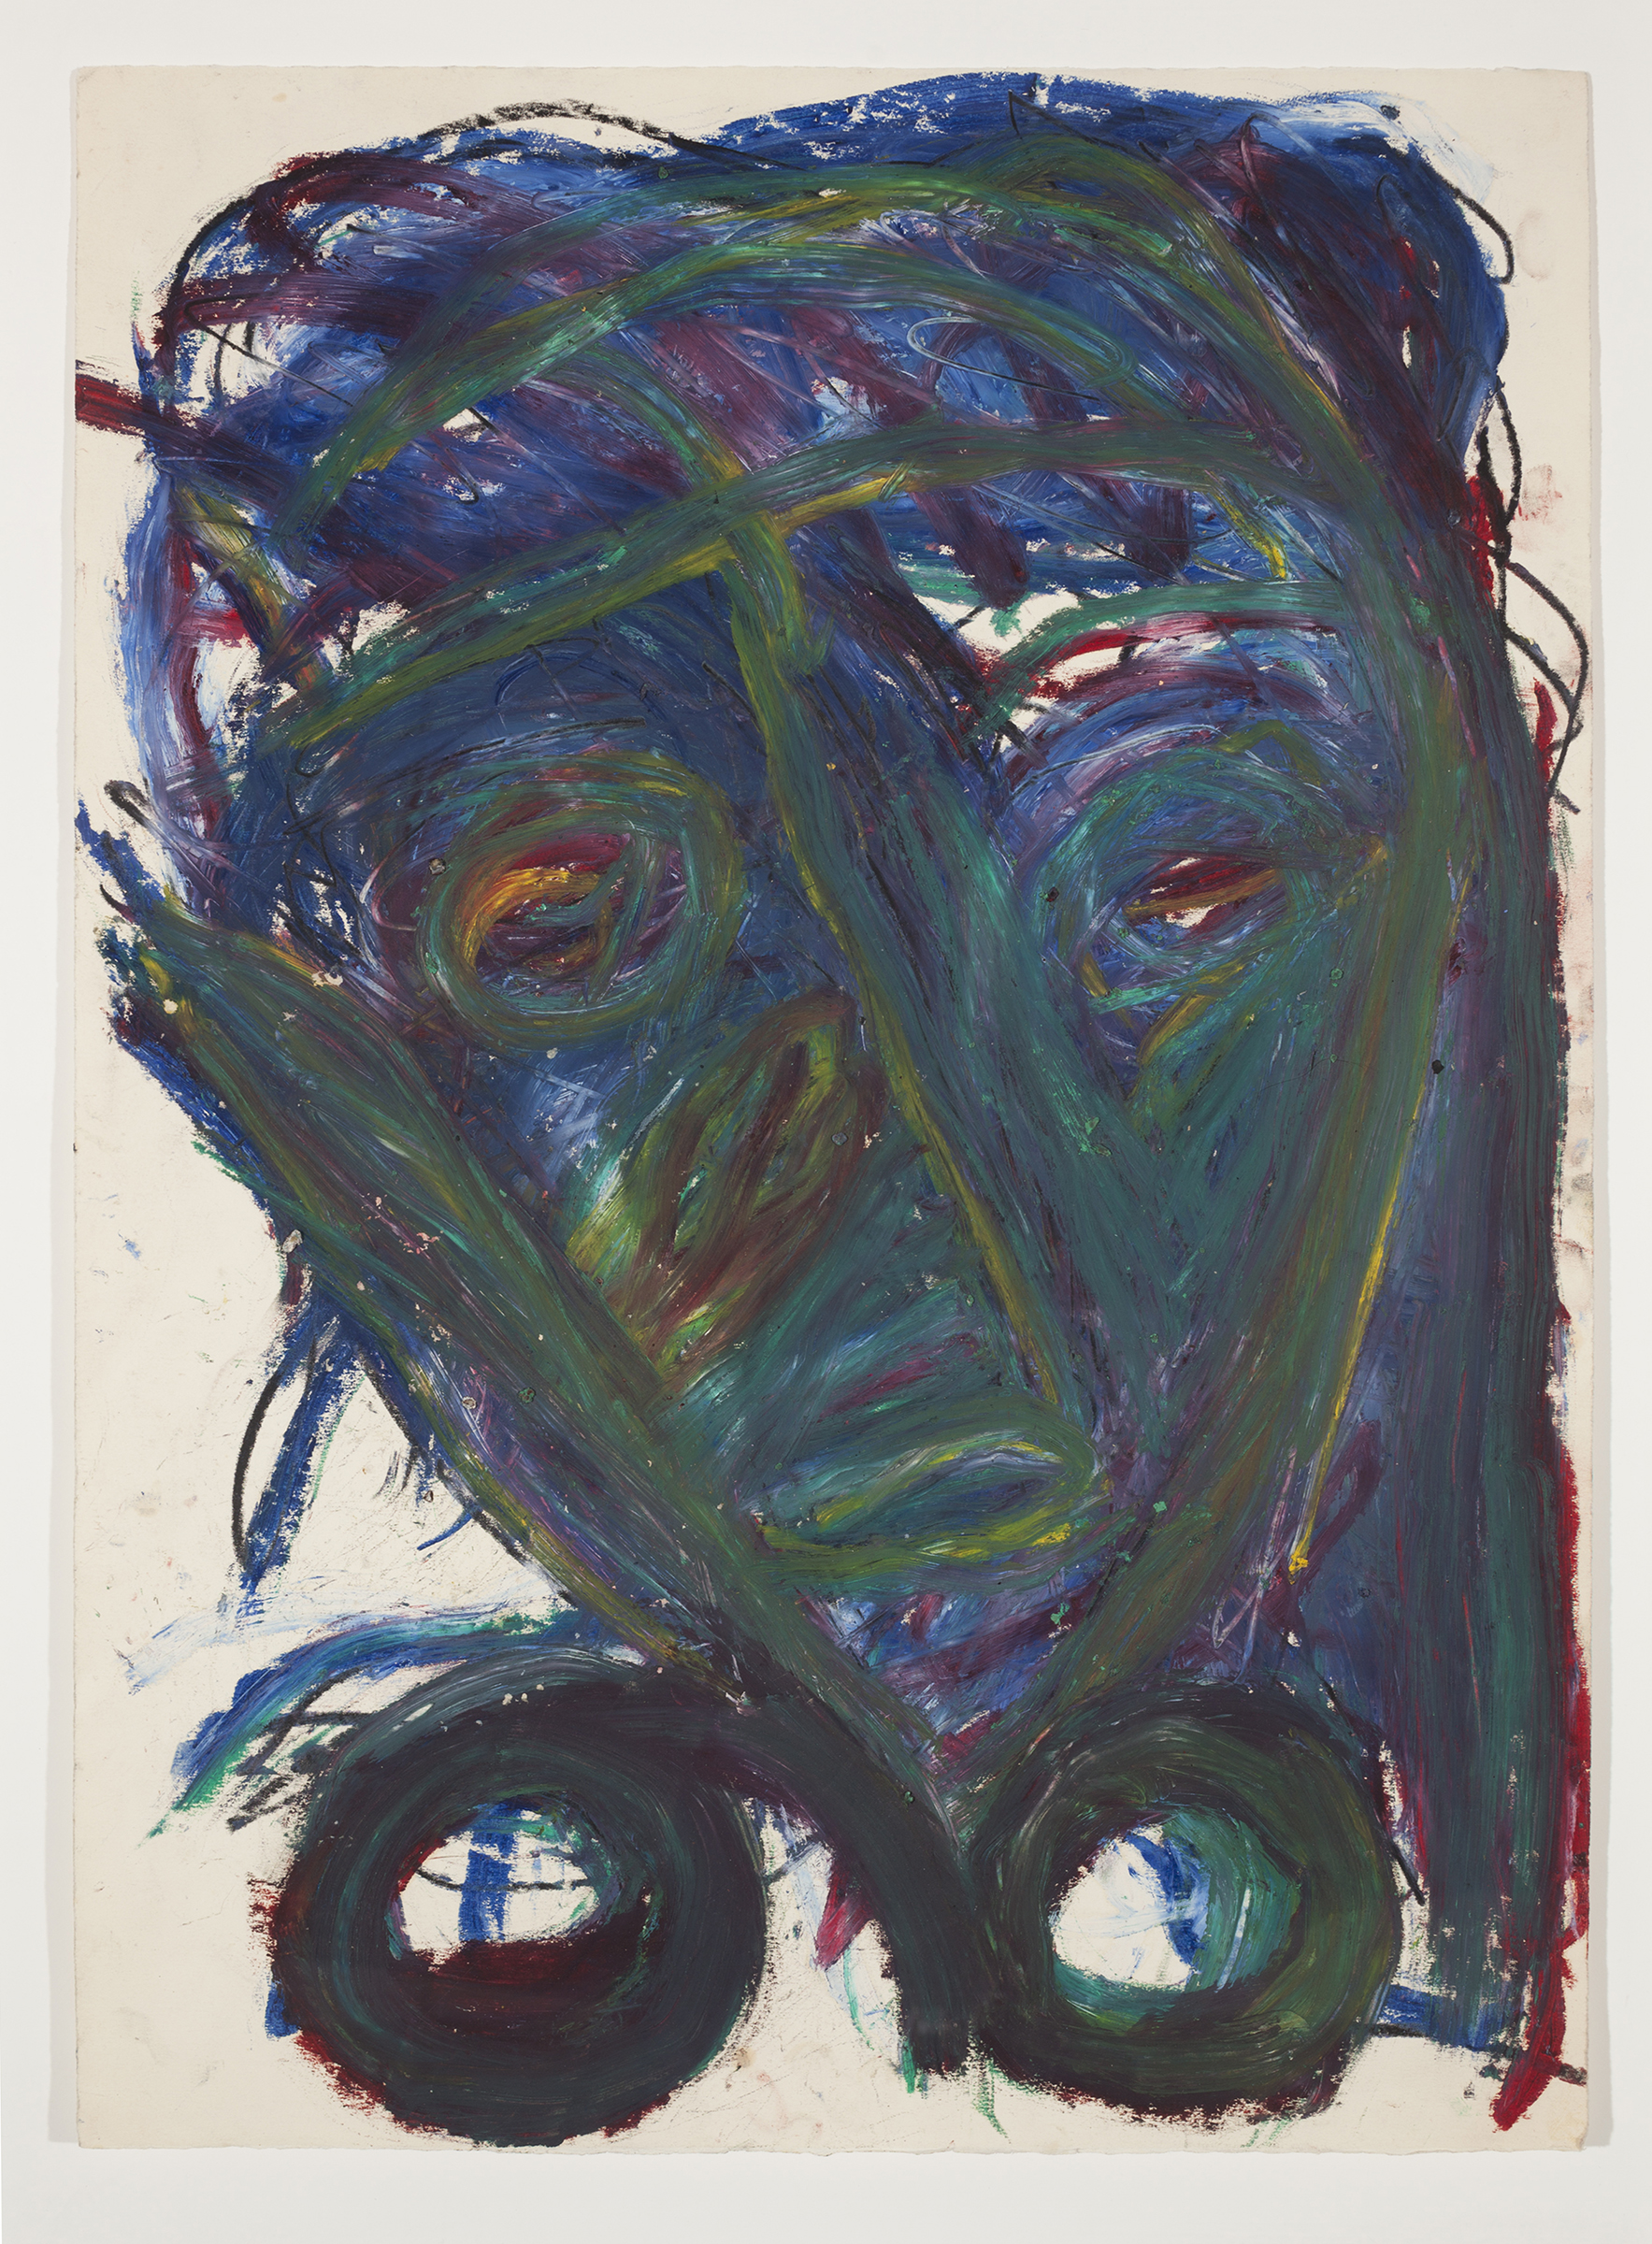 Dan Asher,  Untitled,  1980s, oil stick on paper, 25.875 x 18.875 in.